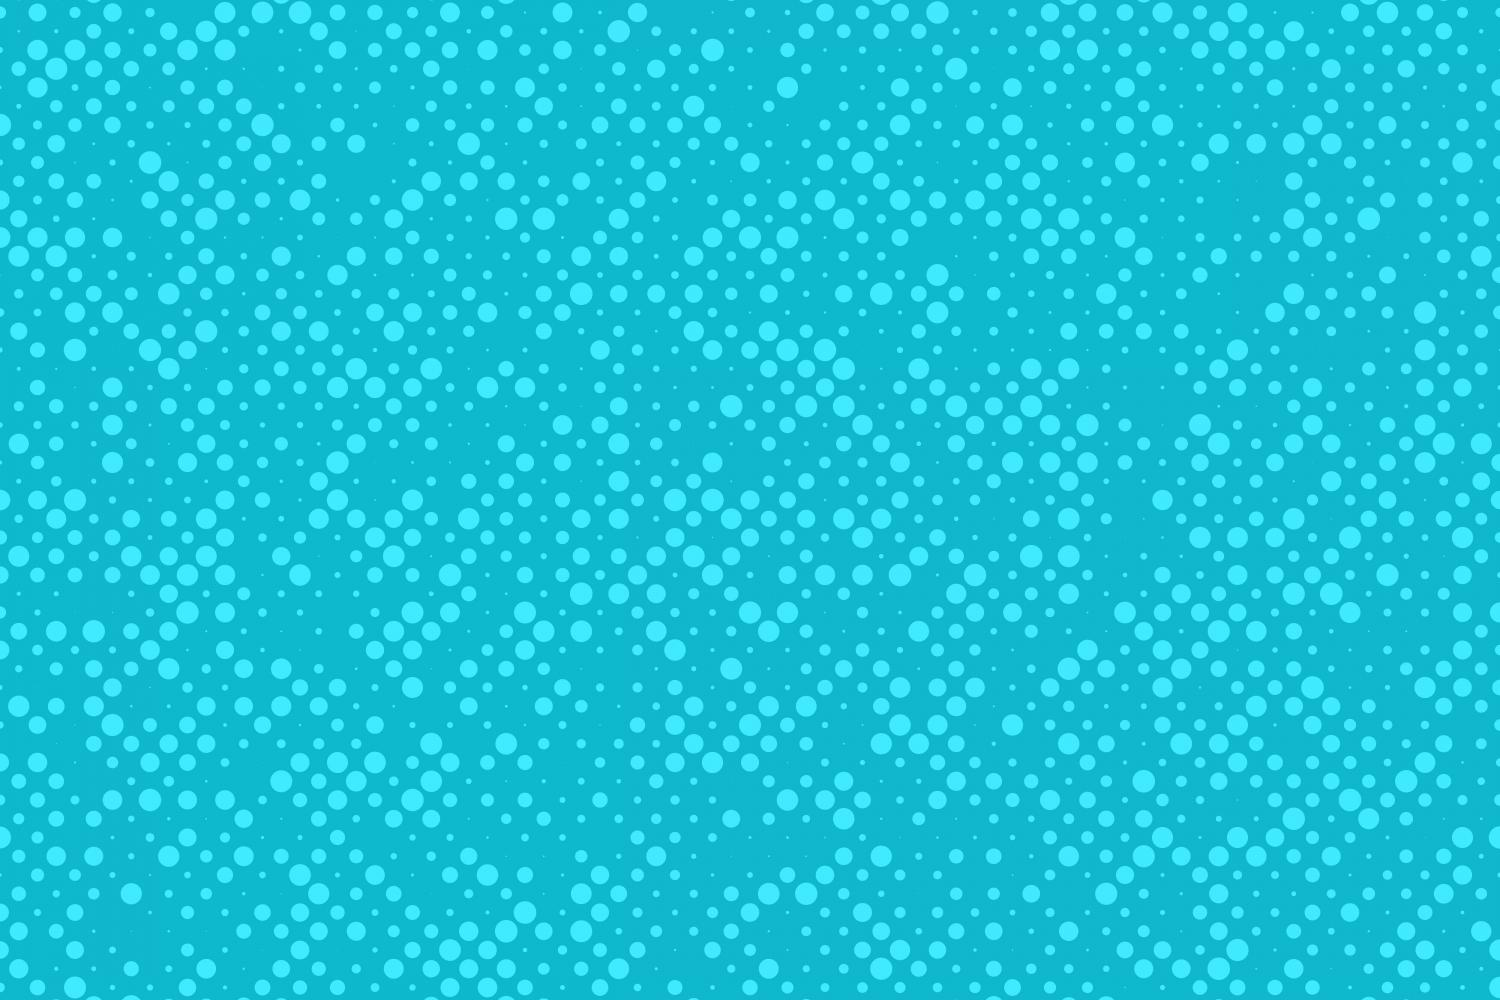 Download Free Light Blue Halftone Dot Pattern Graphic By Davidzydd Creative for Cricut Explore, Silhouette and other cutting machines.